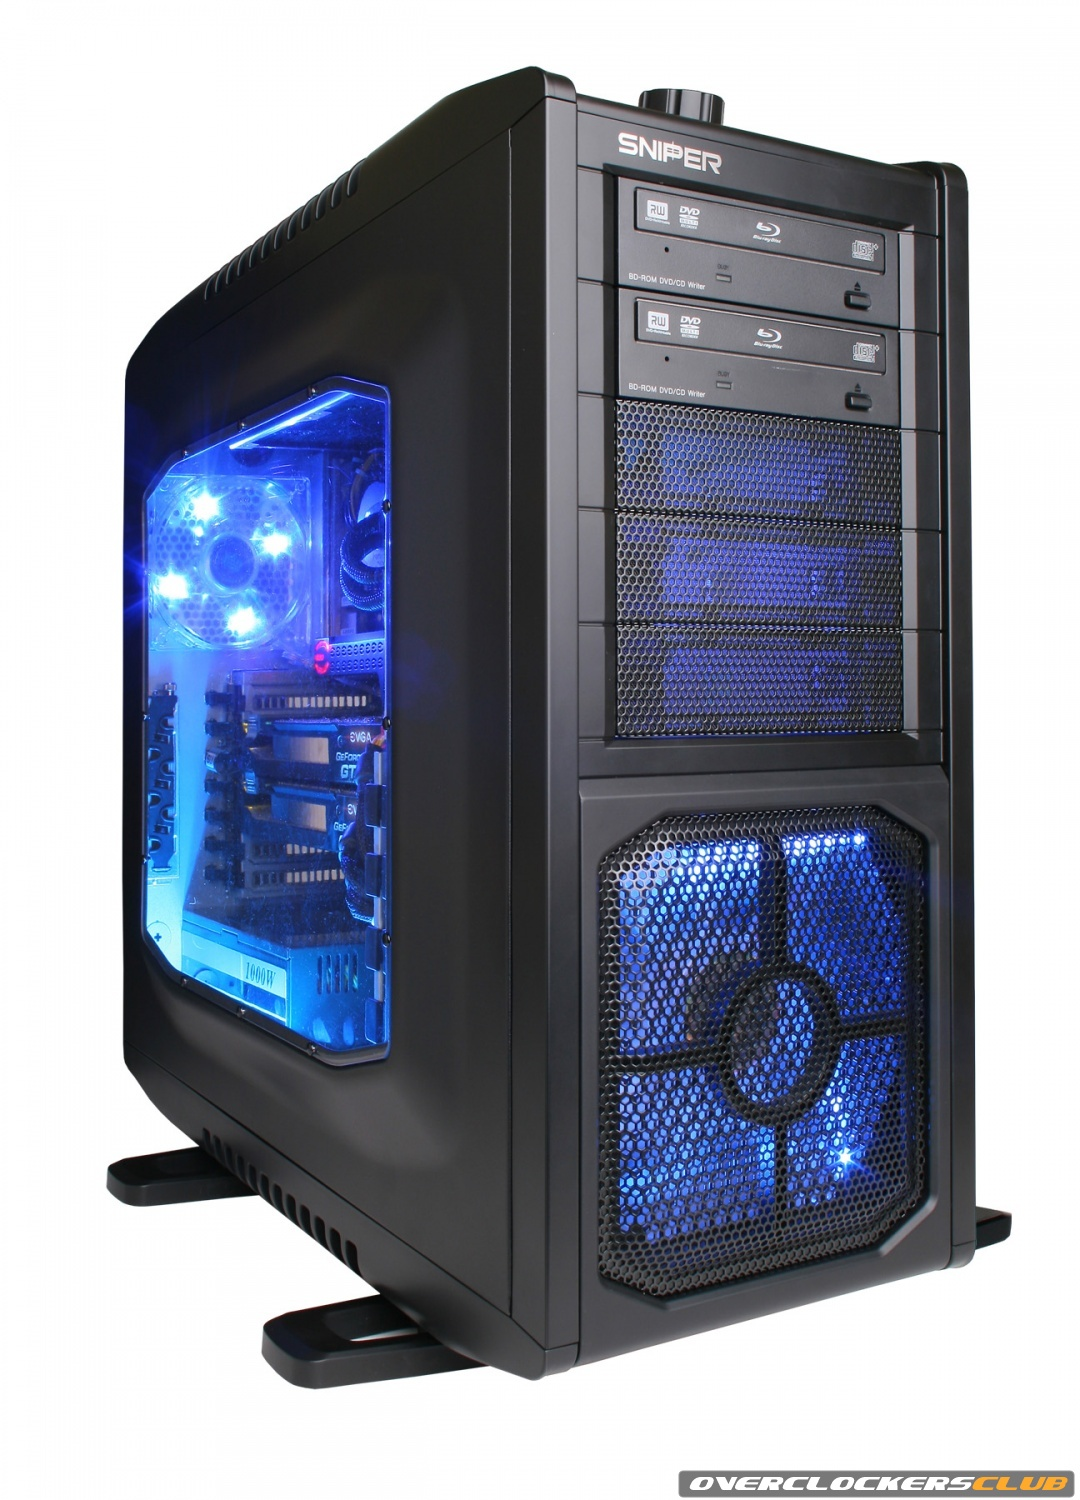 CyberPower Announces New Fang Series Gaming Computers